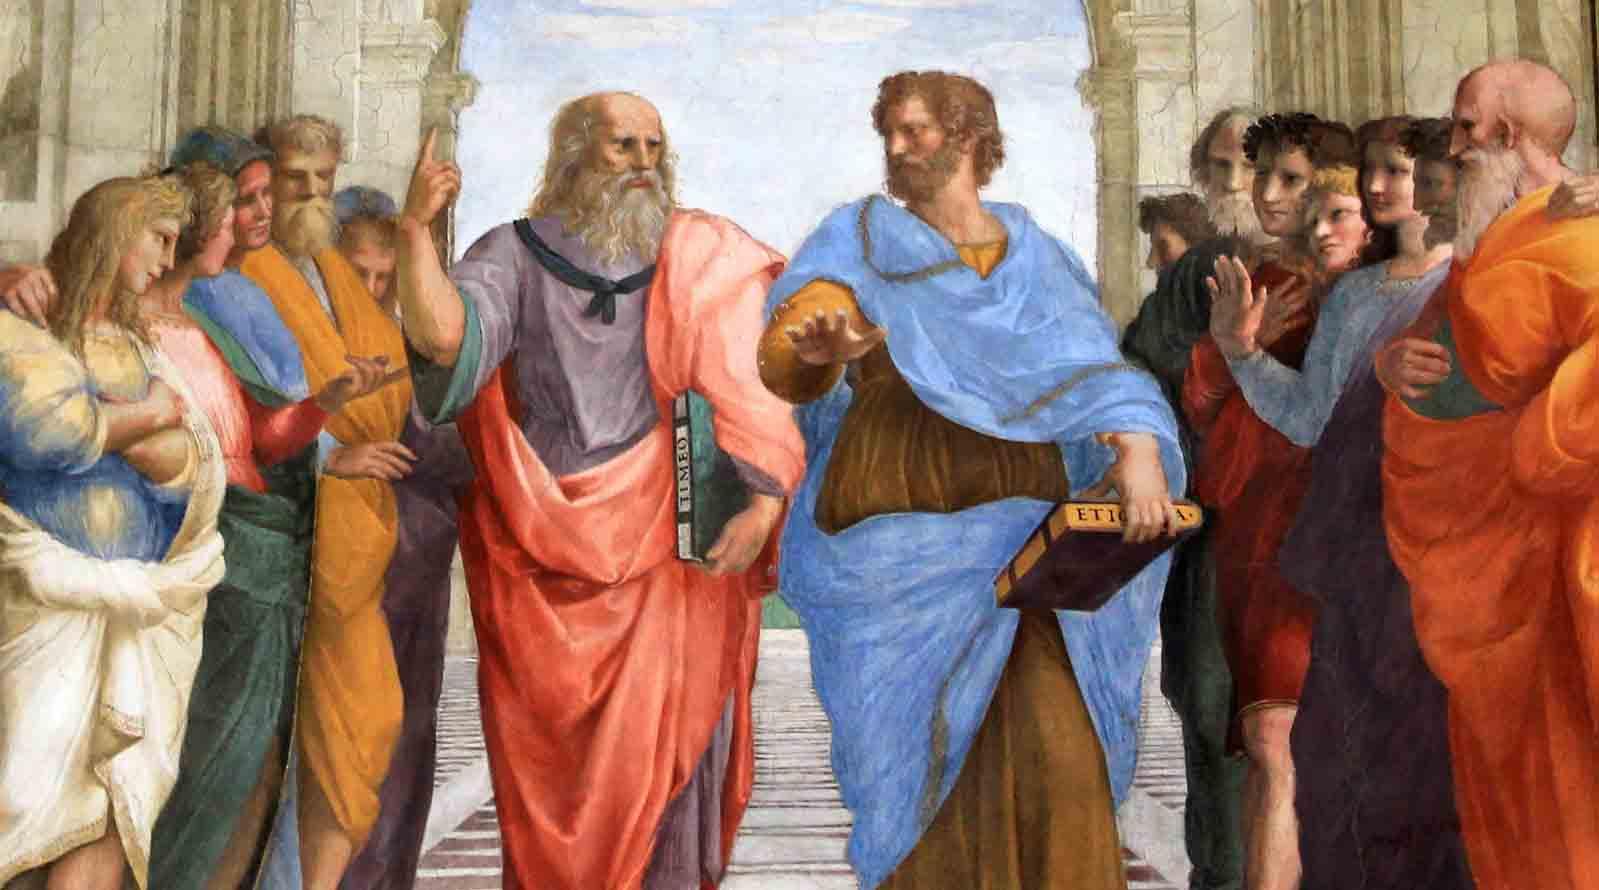 Plato and Aristotle walking at the Athens School